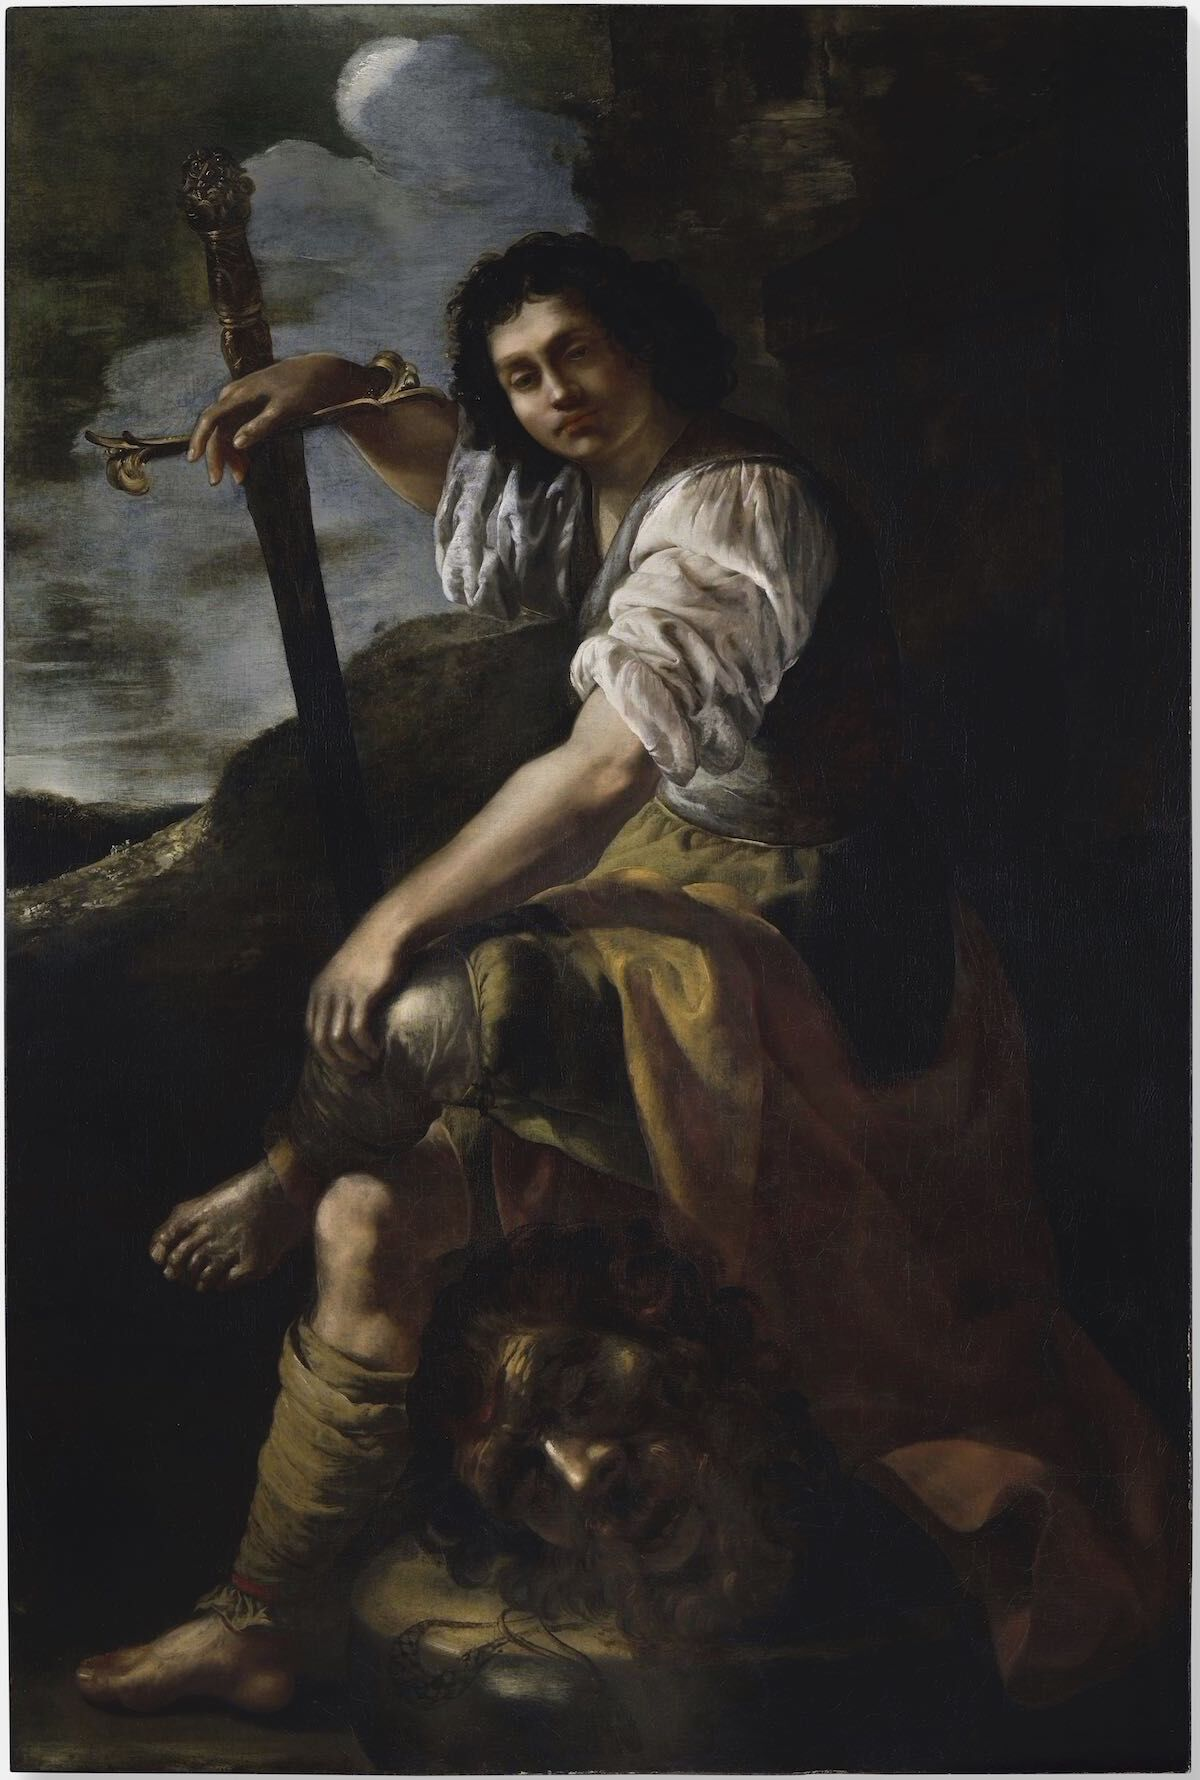 David and Goliath (late 1630s), a painting newly attributed to Artemisia Gentileschi. Photo courtesy Simon Gillespie Studio.